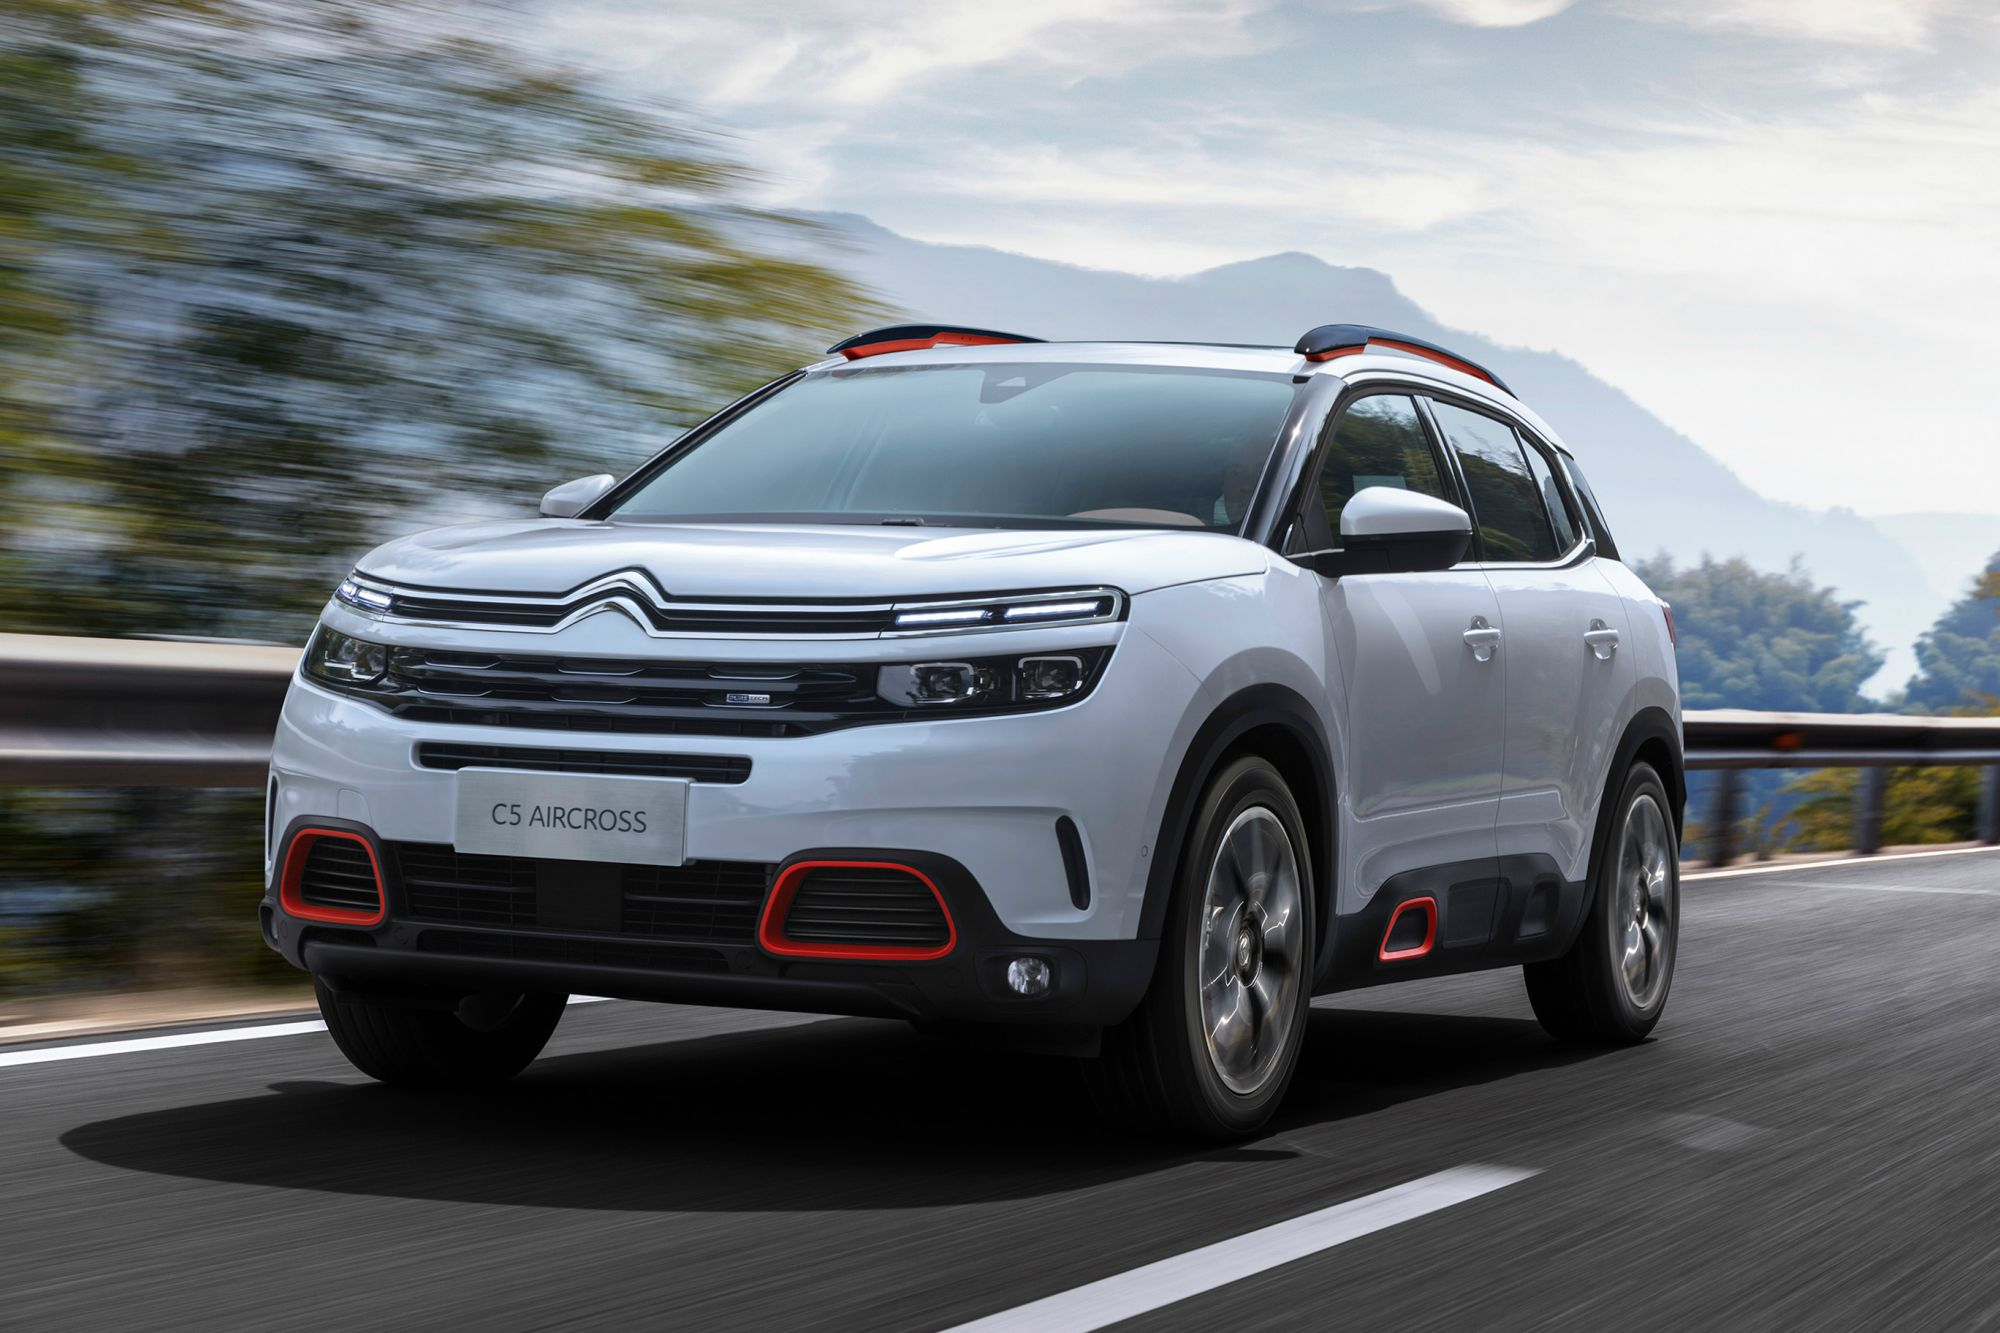 citroen c5 aircross suv unveiled with hybrid tech car keys. Black Bedroom Furniture Sets. Home Design Ideas